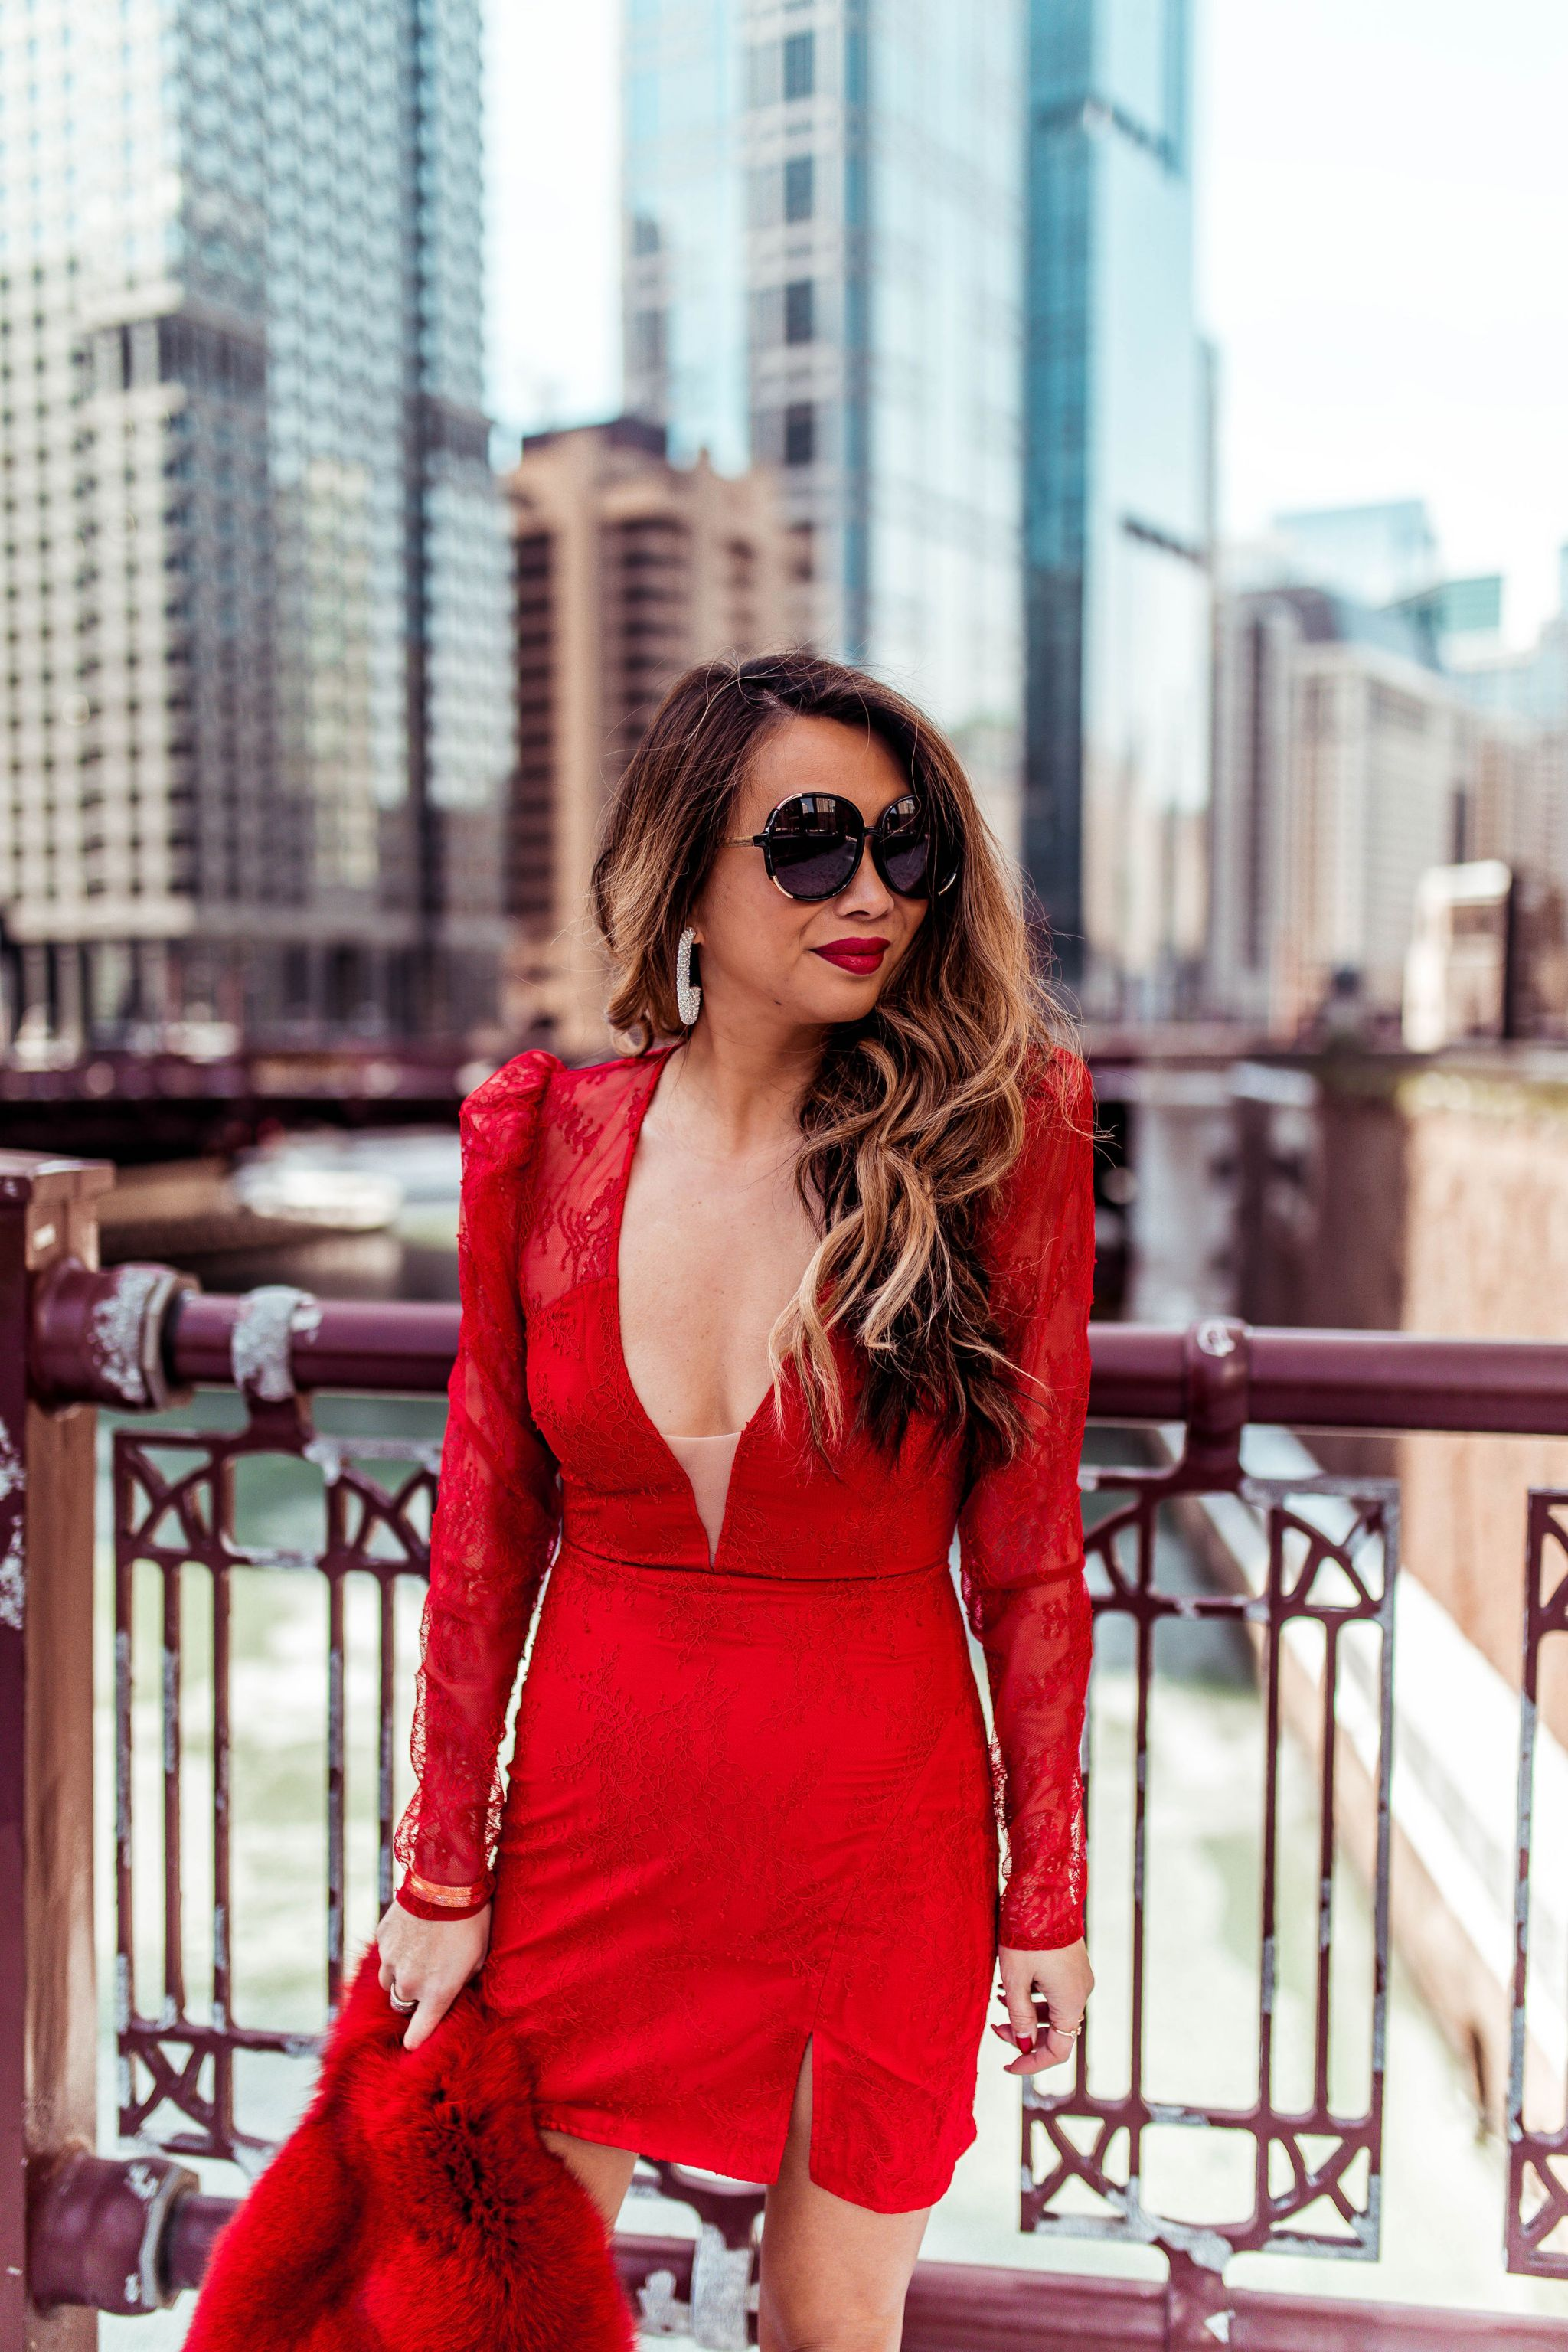 Michael Costello Dress, Best Red Dress, Chicago Fashion Blogger, Chicago Riverwalk, Vday style, Jennifer Worman, Best spot to take photos in Chicago, Revolve Red Dress, Costello Vivian Dress